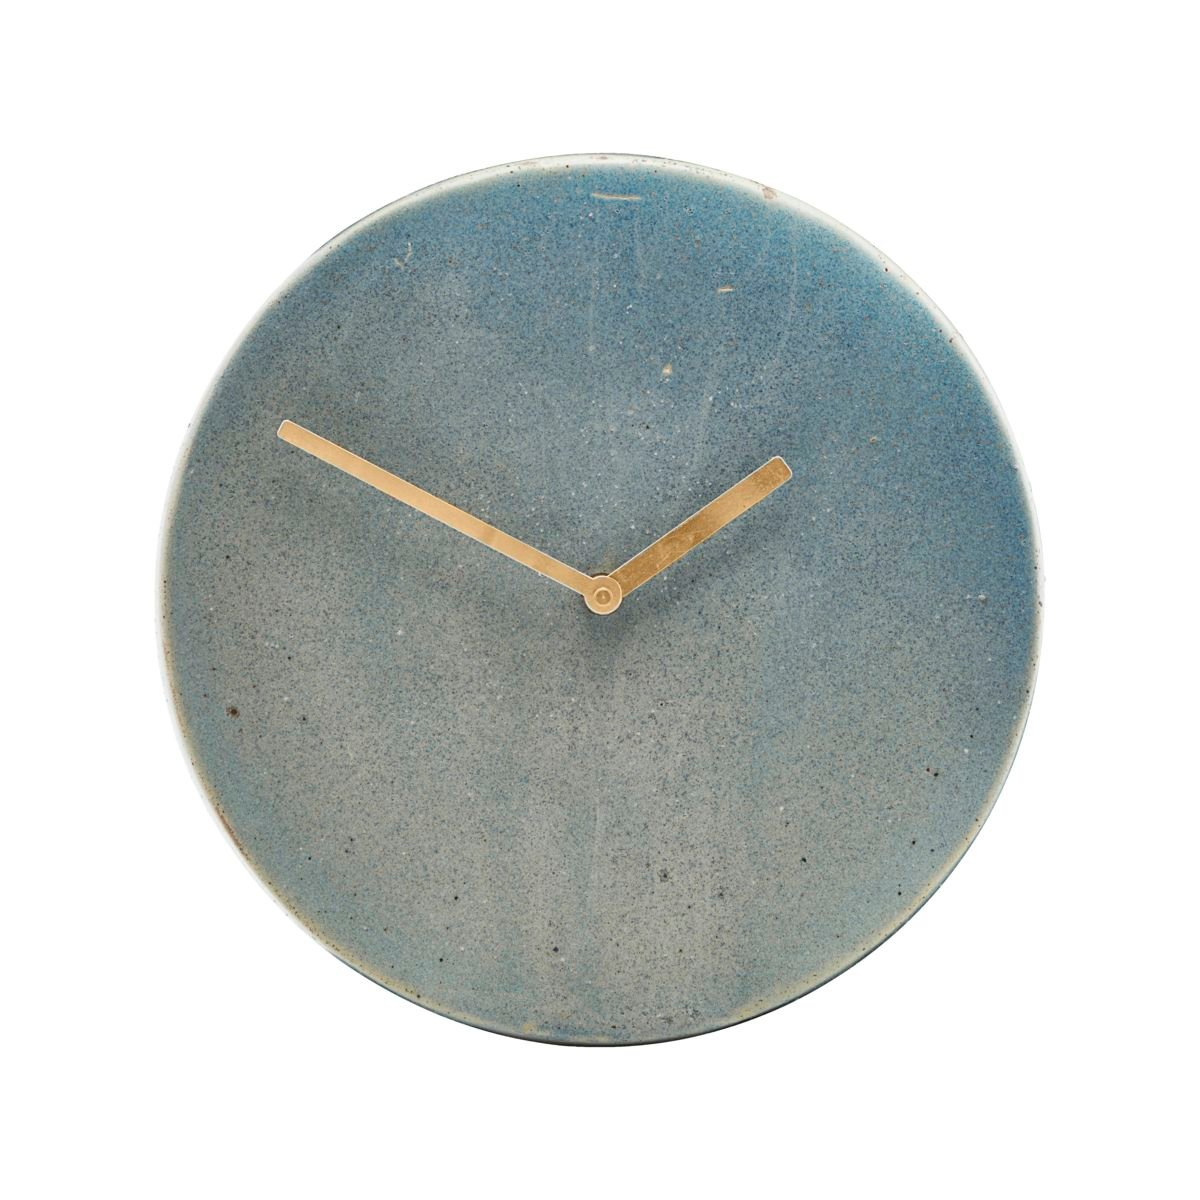 House Doctor - Metro Wall Watch - Grey/Blue (MT0501)